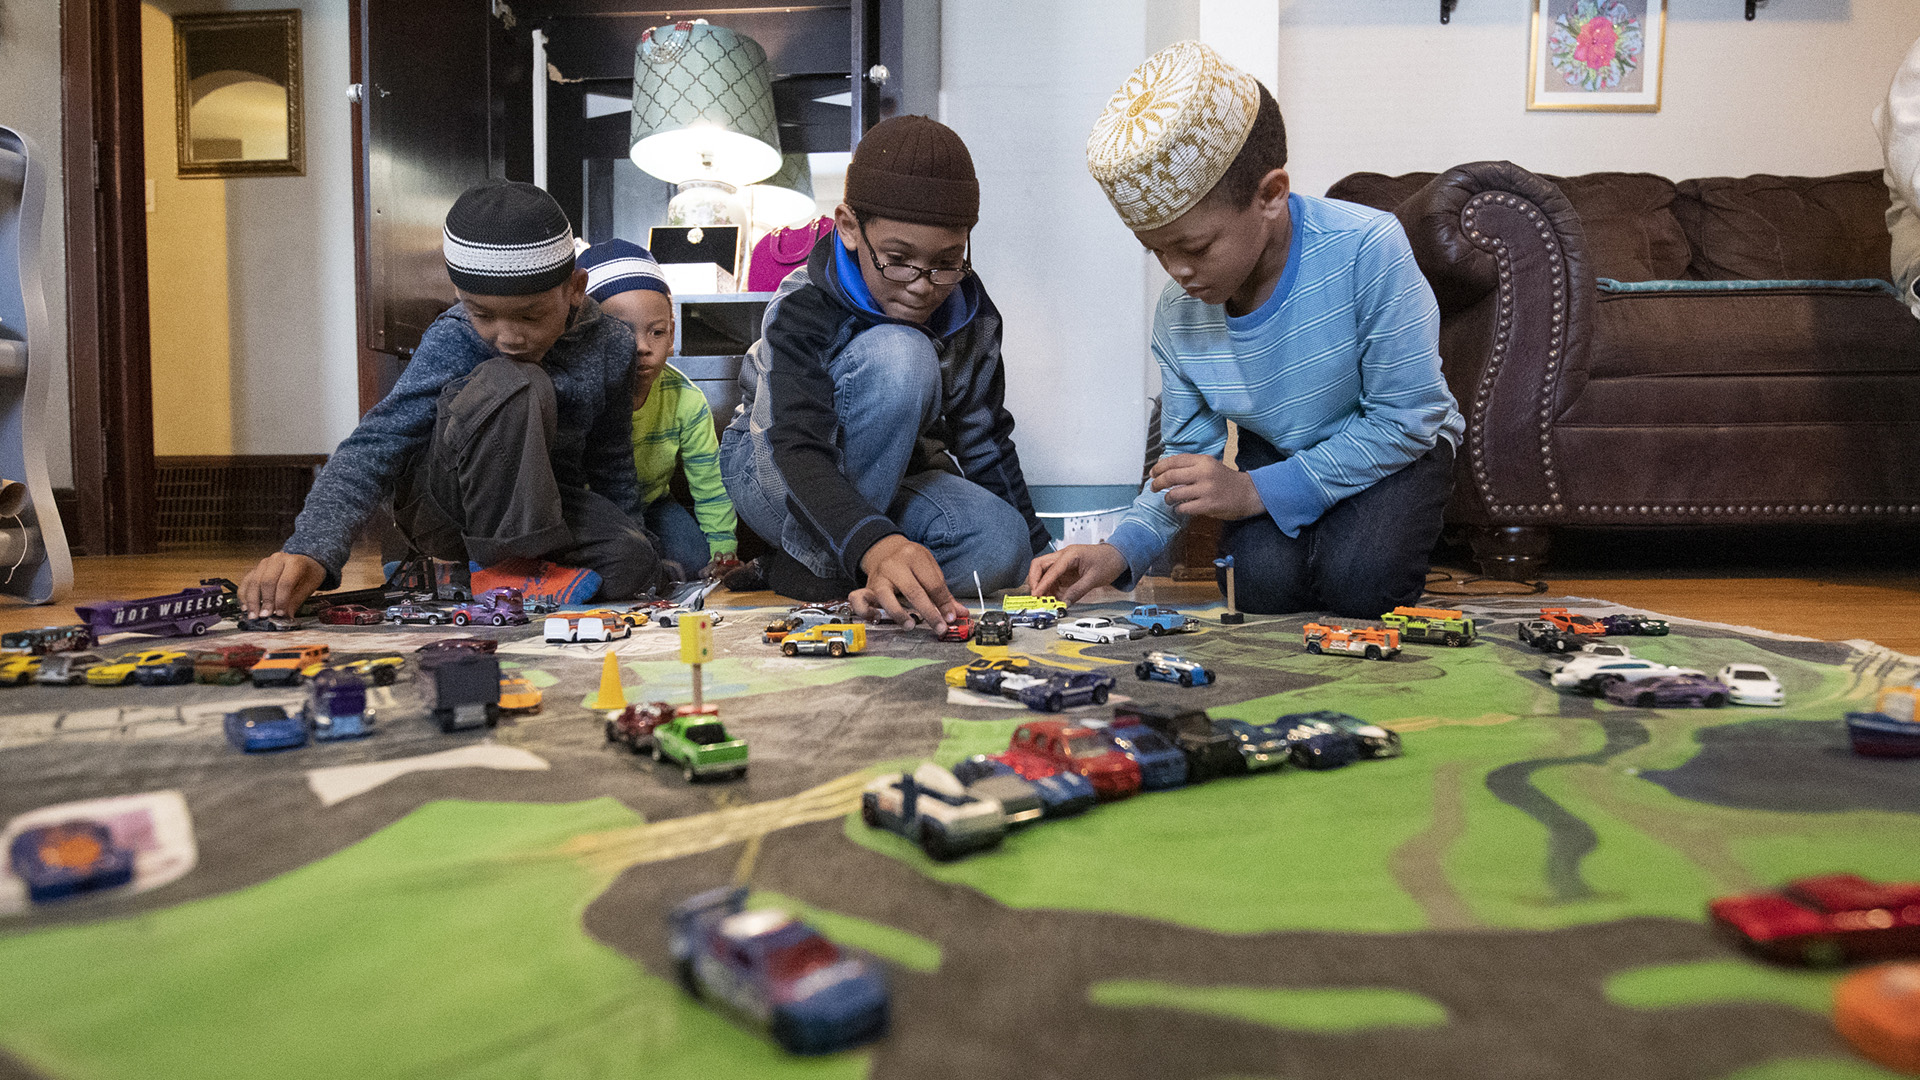 Children play with toy cars on the floor.